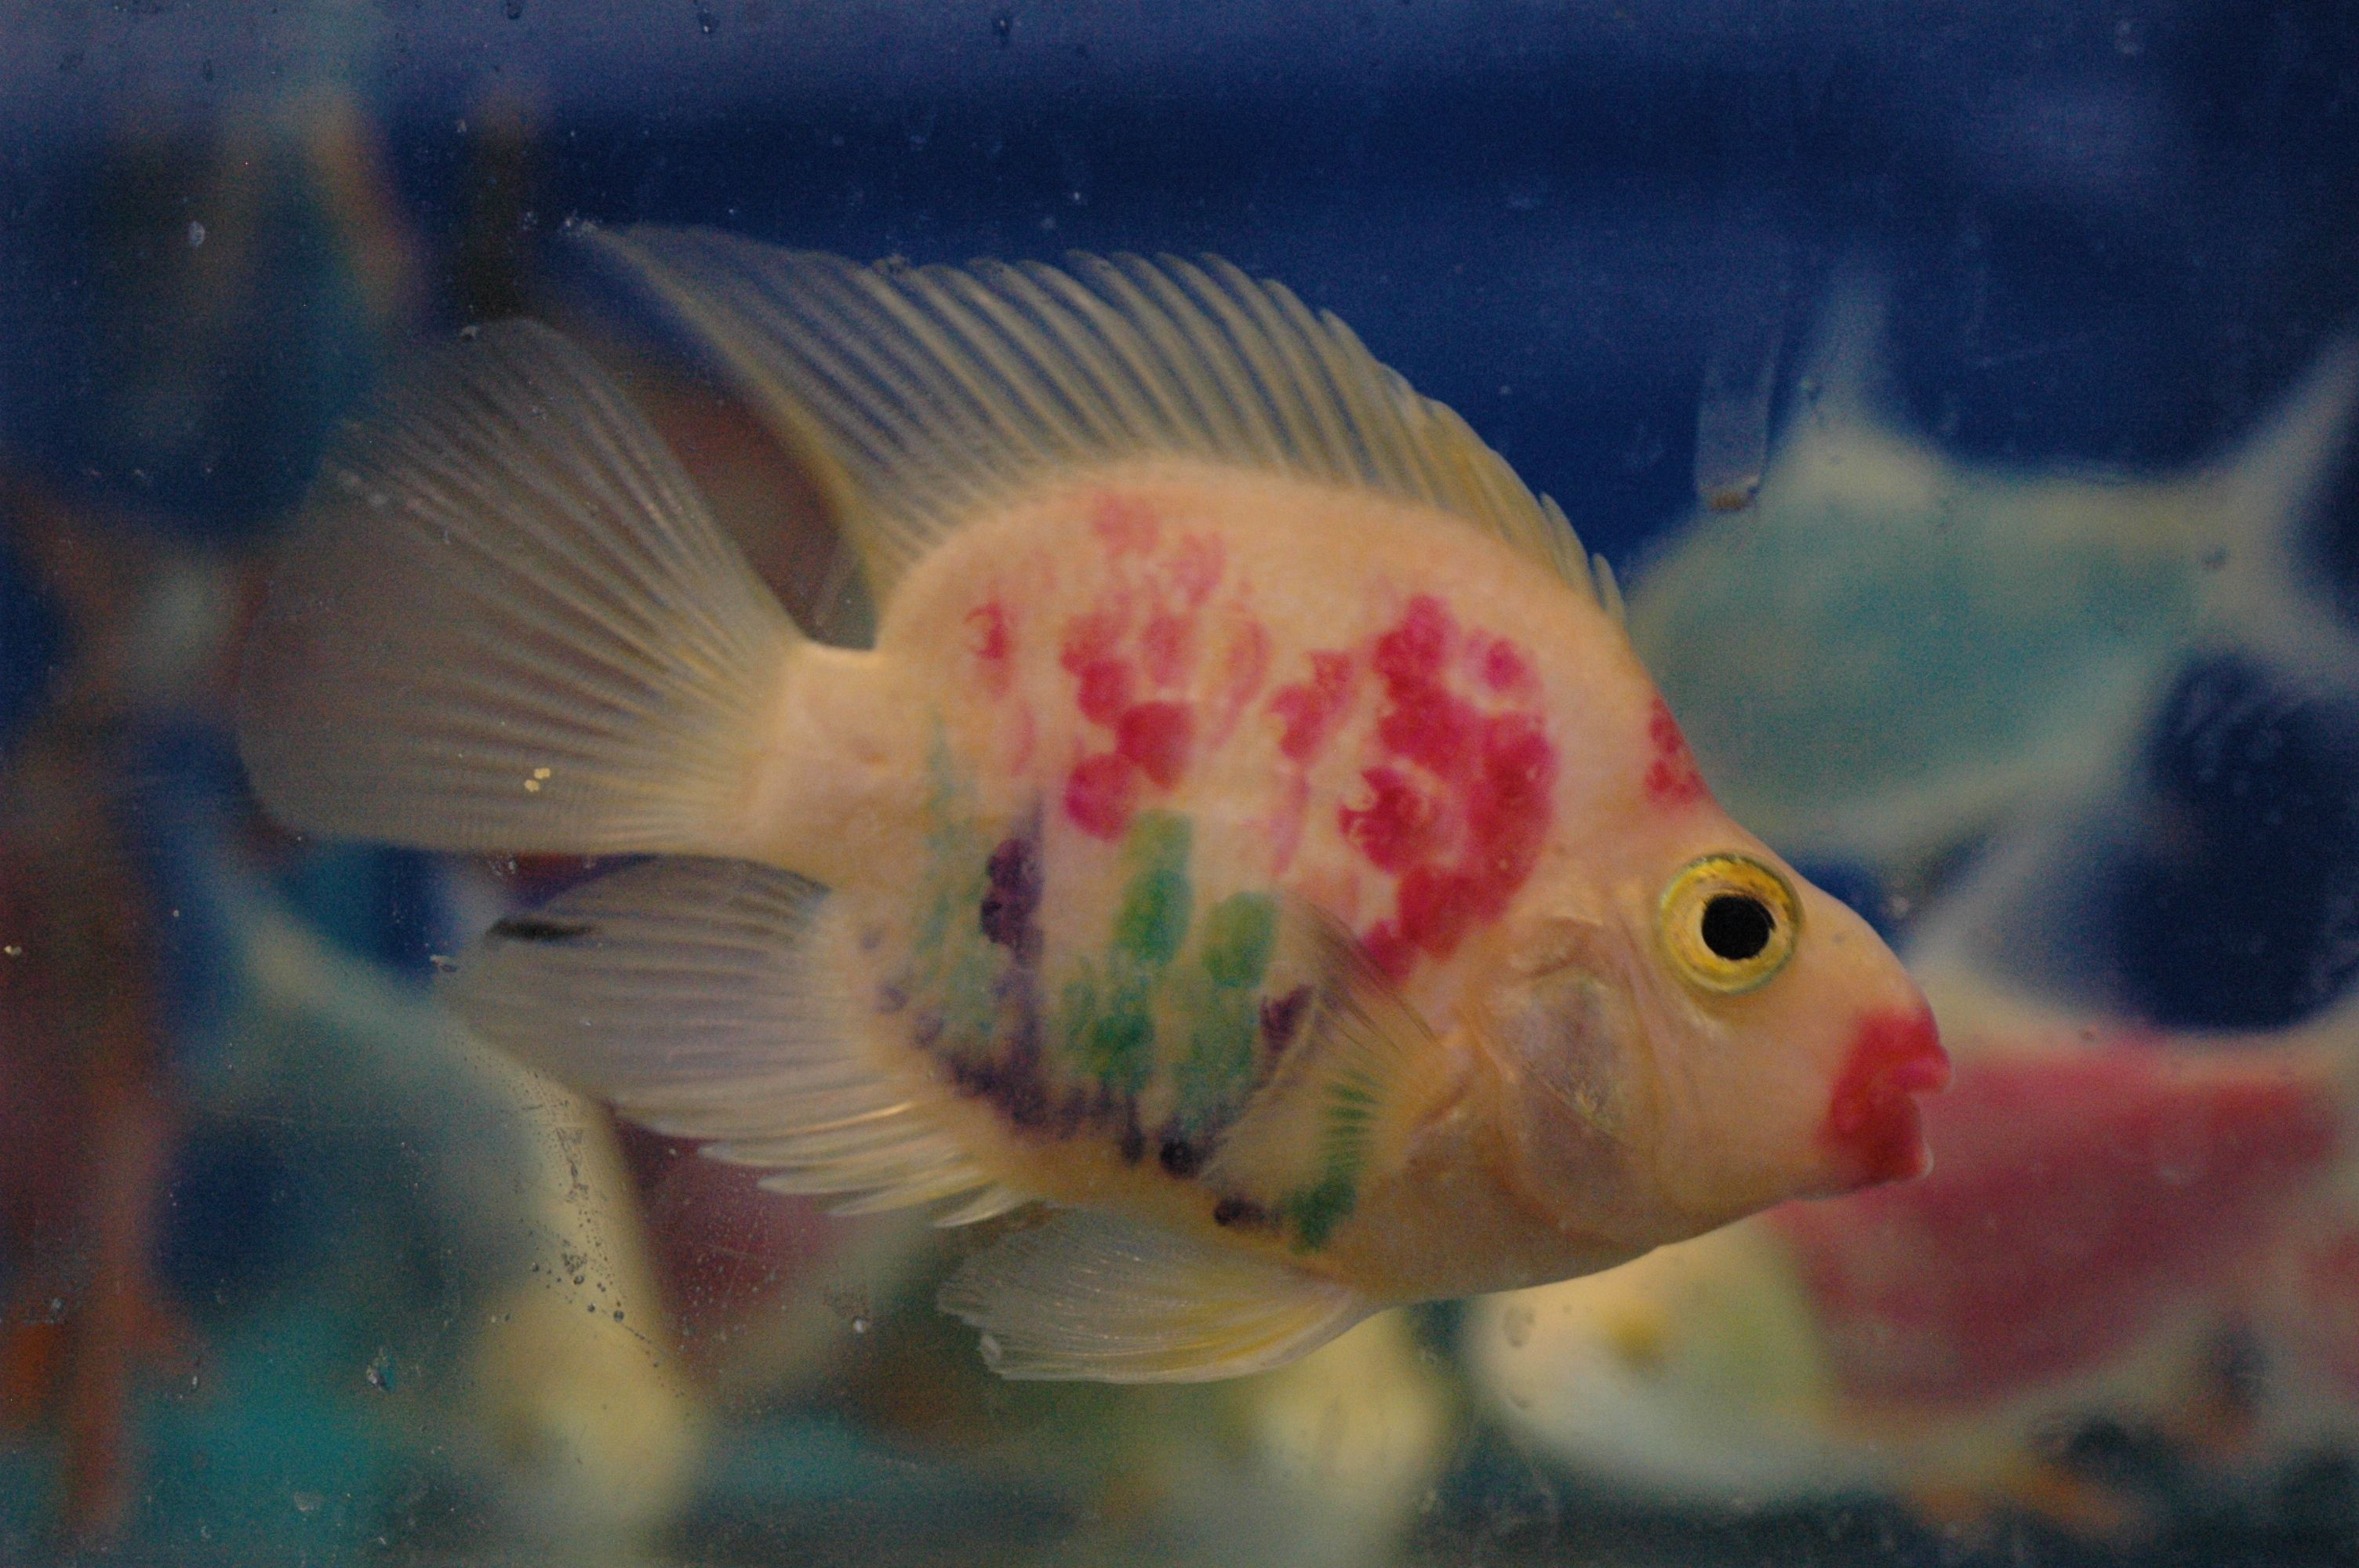 Freshwater aquarium fish jacksonville fl - If You Have Ever Wandered Into An Aquarium Store Then Surely You Must Have Come Across A Weird Geisha Looking Fish With Red Lipstick And Floral Patterns On